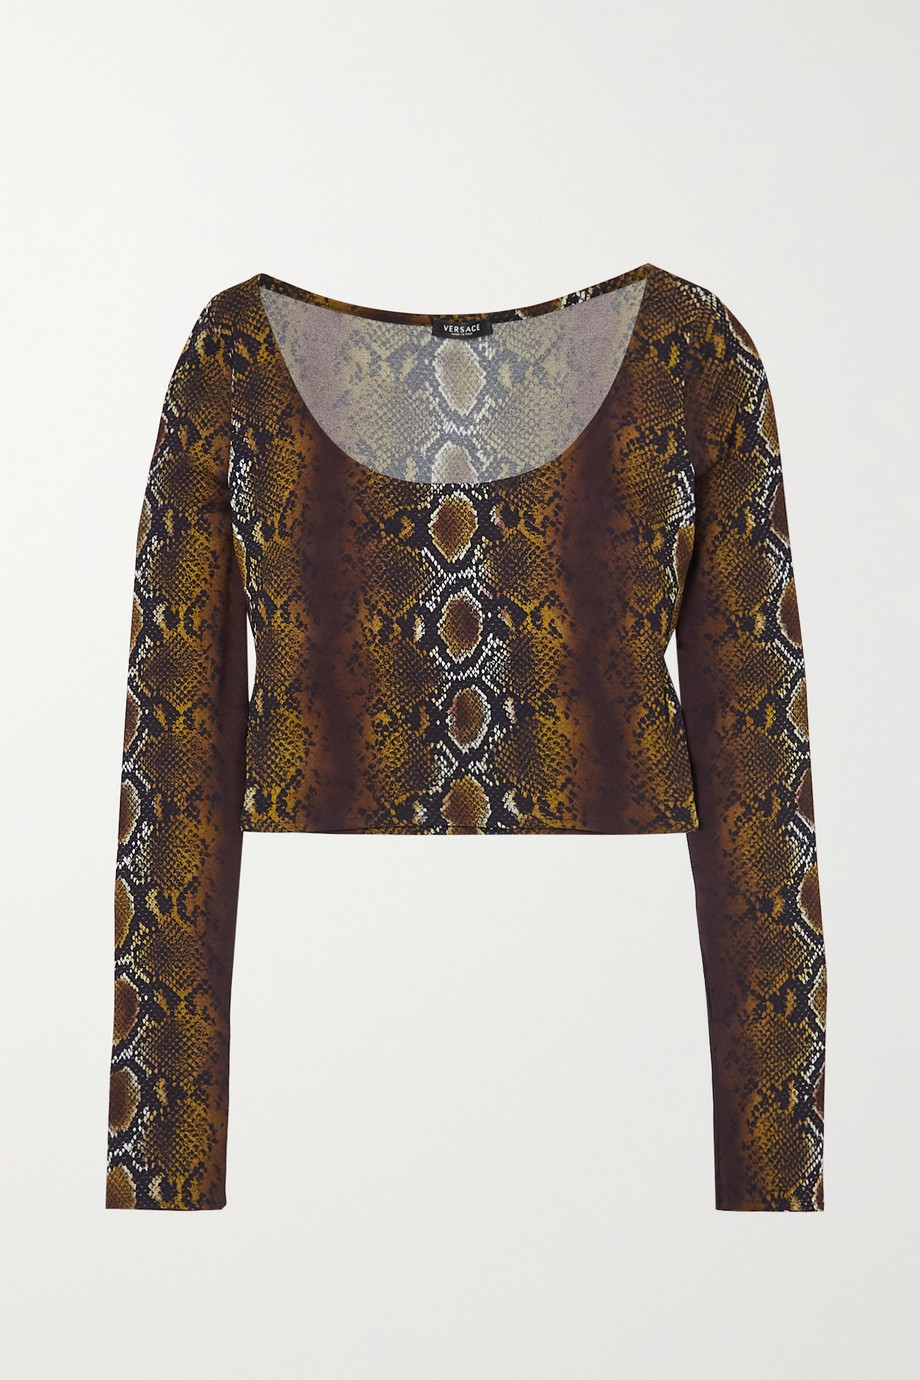 Versace Cropped snake-print stretch-crepe top